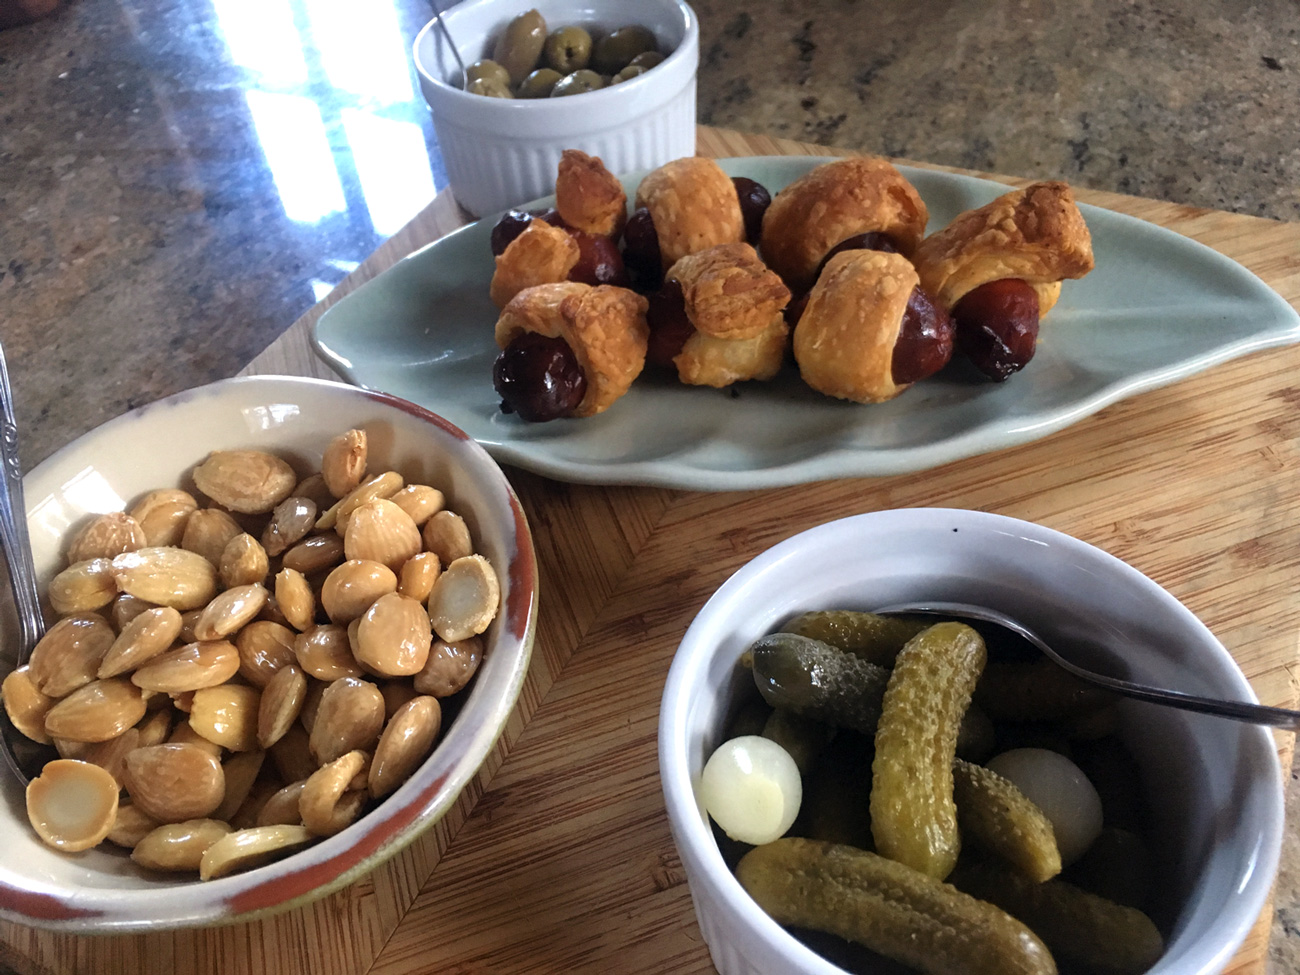 The puff pastry adds a buttery flavor that complements the spice of the chorizo. These are a more grown up way of serving Pigs in a Blanket. Adding a nod to France, I mixed up whole grain mustard with dijon for dipping. Marcona almonds and cornichons for crunchy, salty bites.